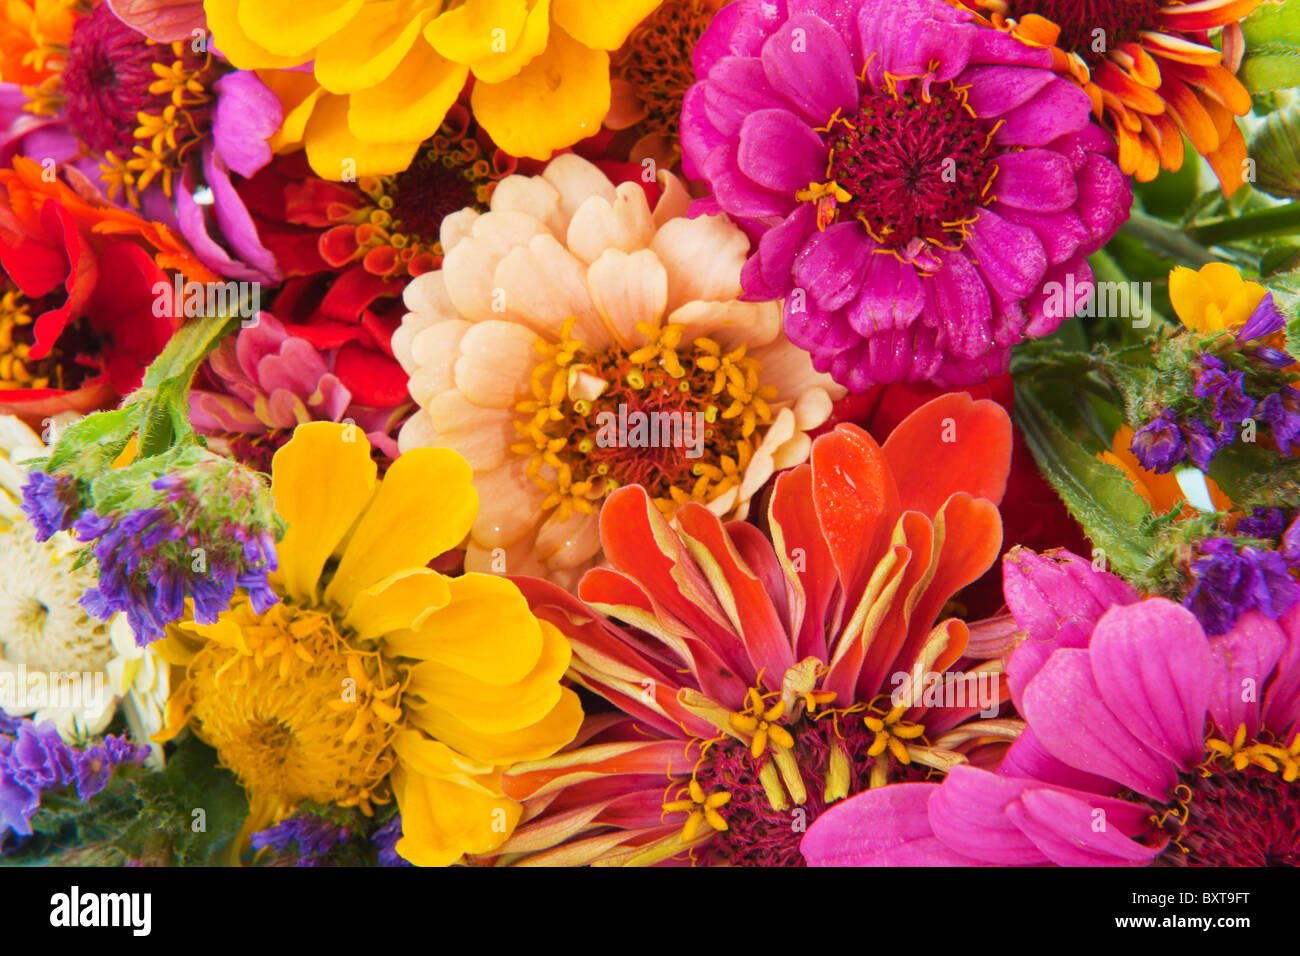 colorful flower bouquet with many different mixed flowers Stock ...